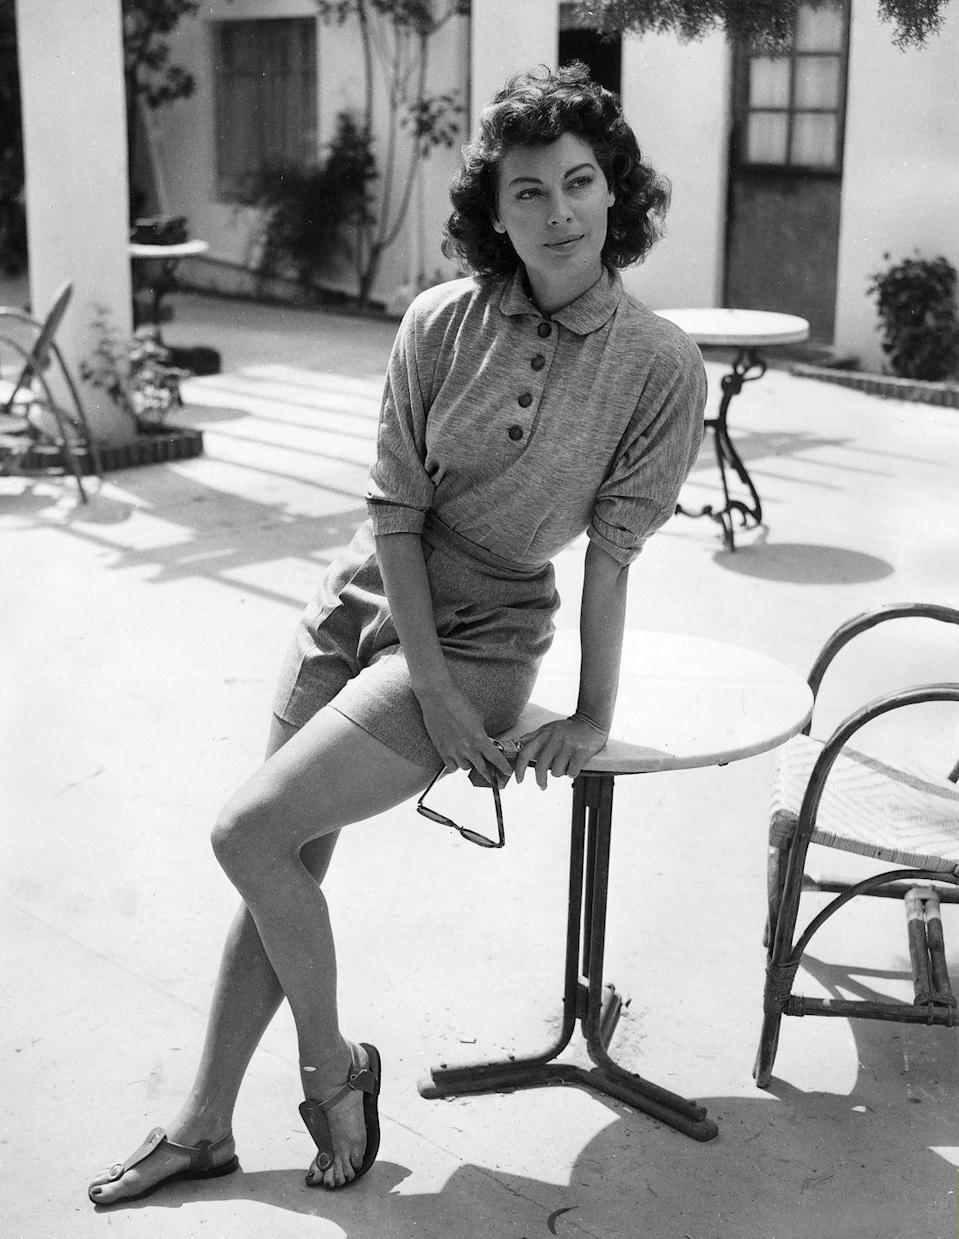 <p>At ease, Gardner strikes a casual pose in a knit top, pressed shorts, and flat summer sandals. The actress bought a stucco cottage set on a cliff in Nichols Canyon, which she decorated as a sunny escape for herself between marriages. </p>